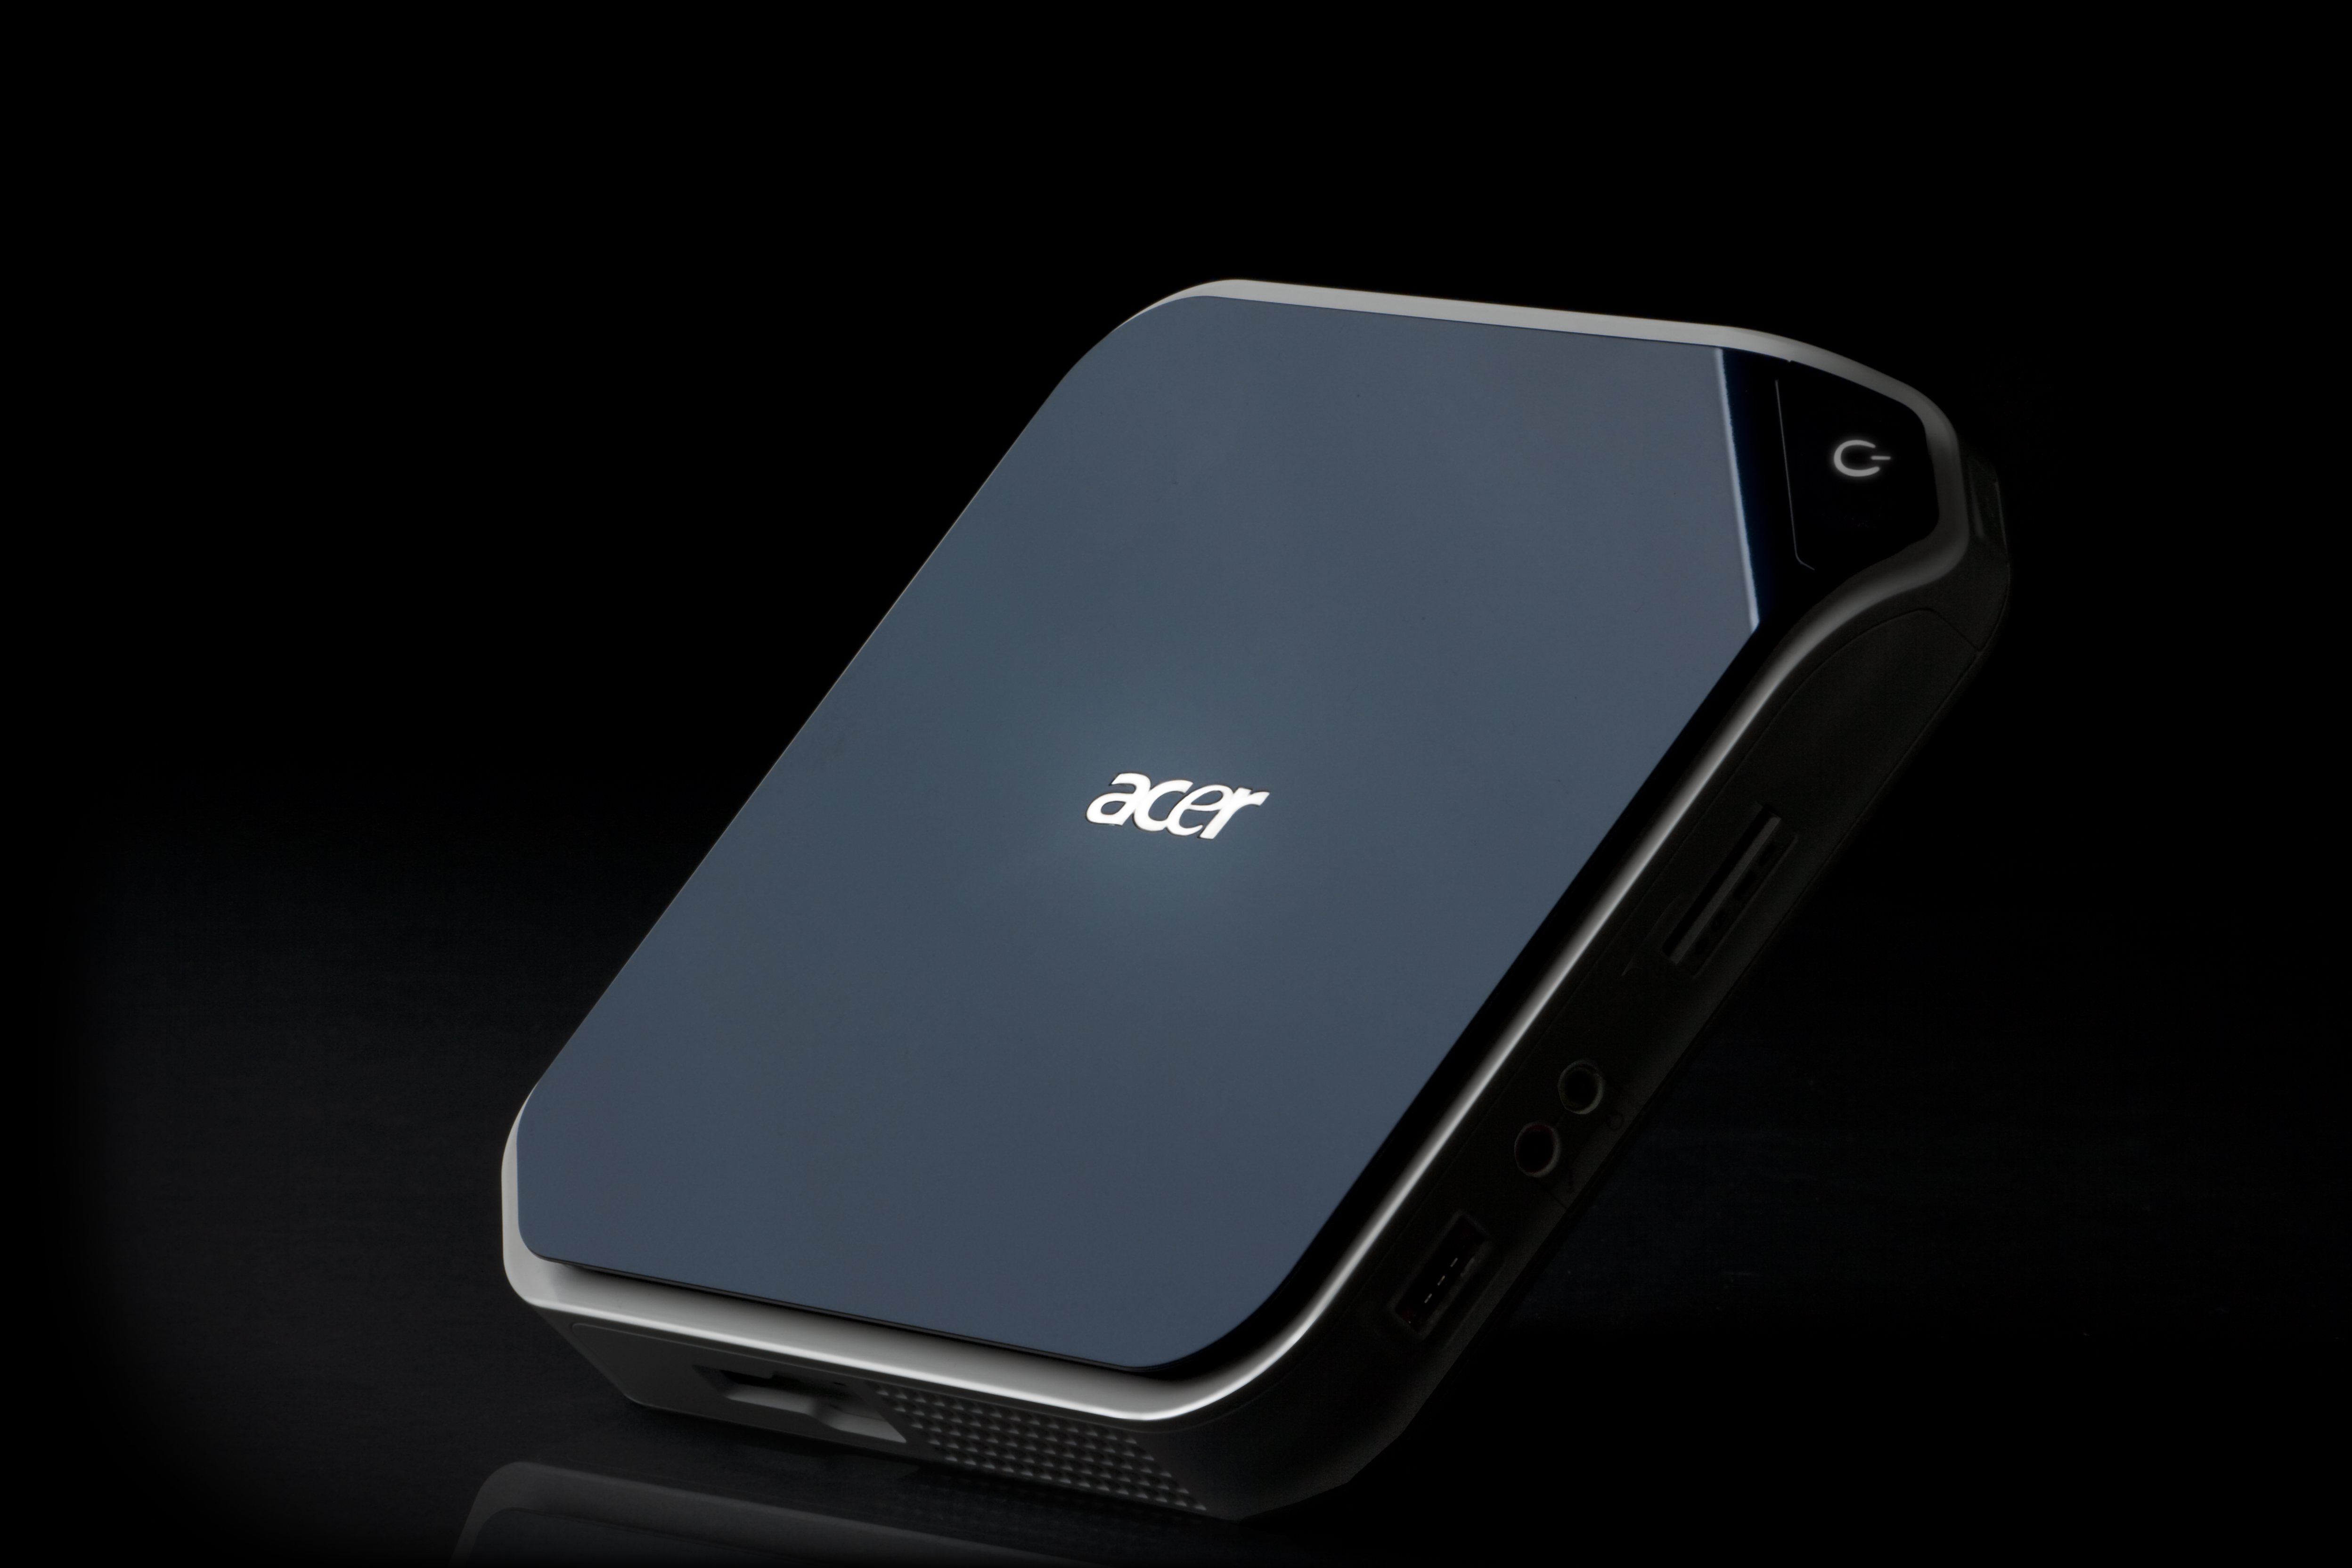 The Acer AspireRevo is the world's first PC to feature NVIDIA ION ...